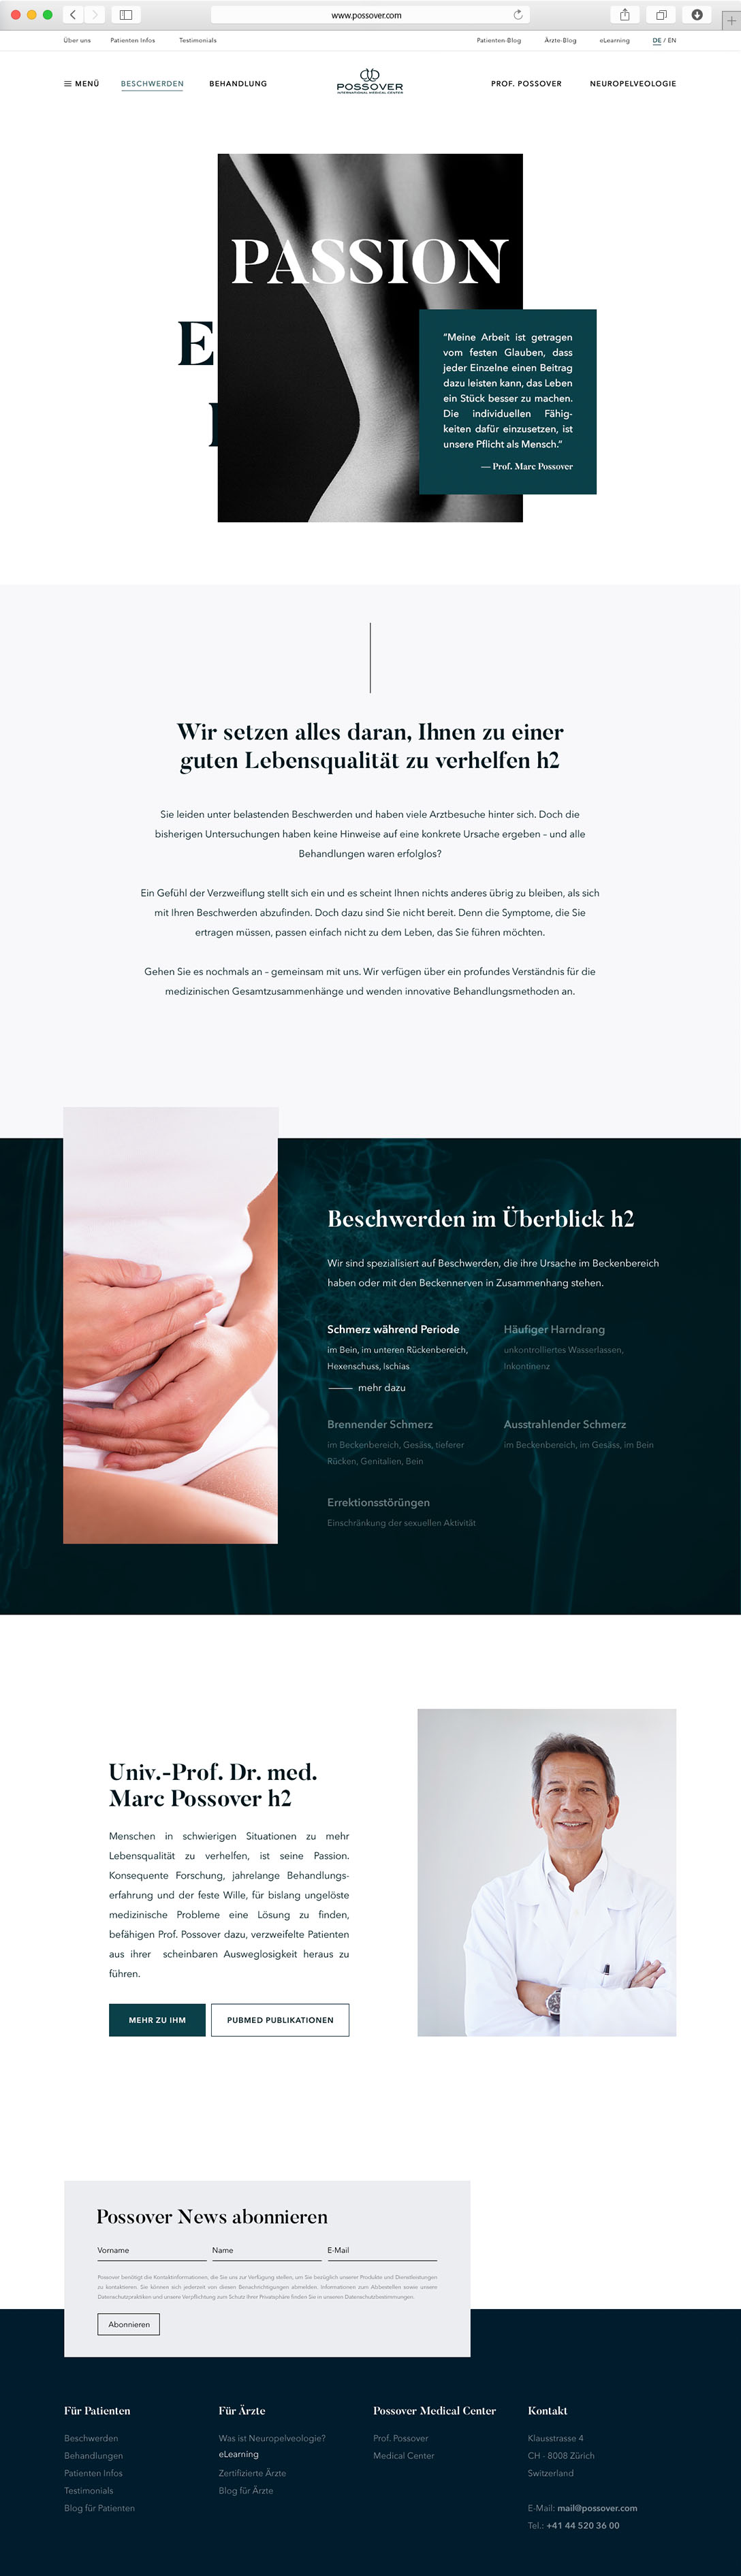 webdesign-bsp-possover-full